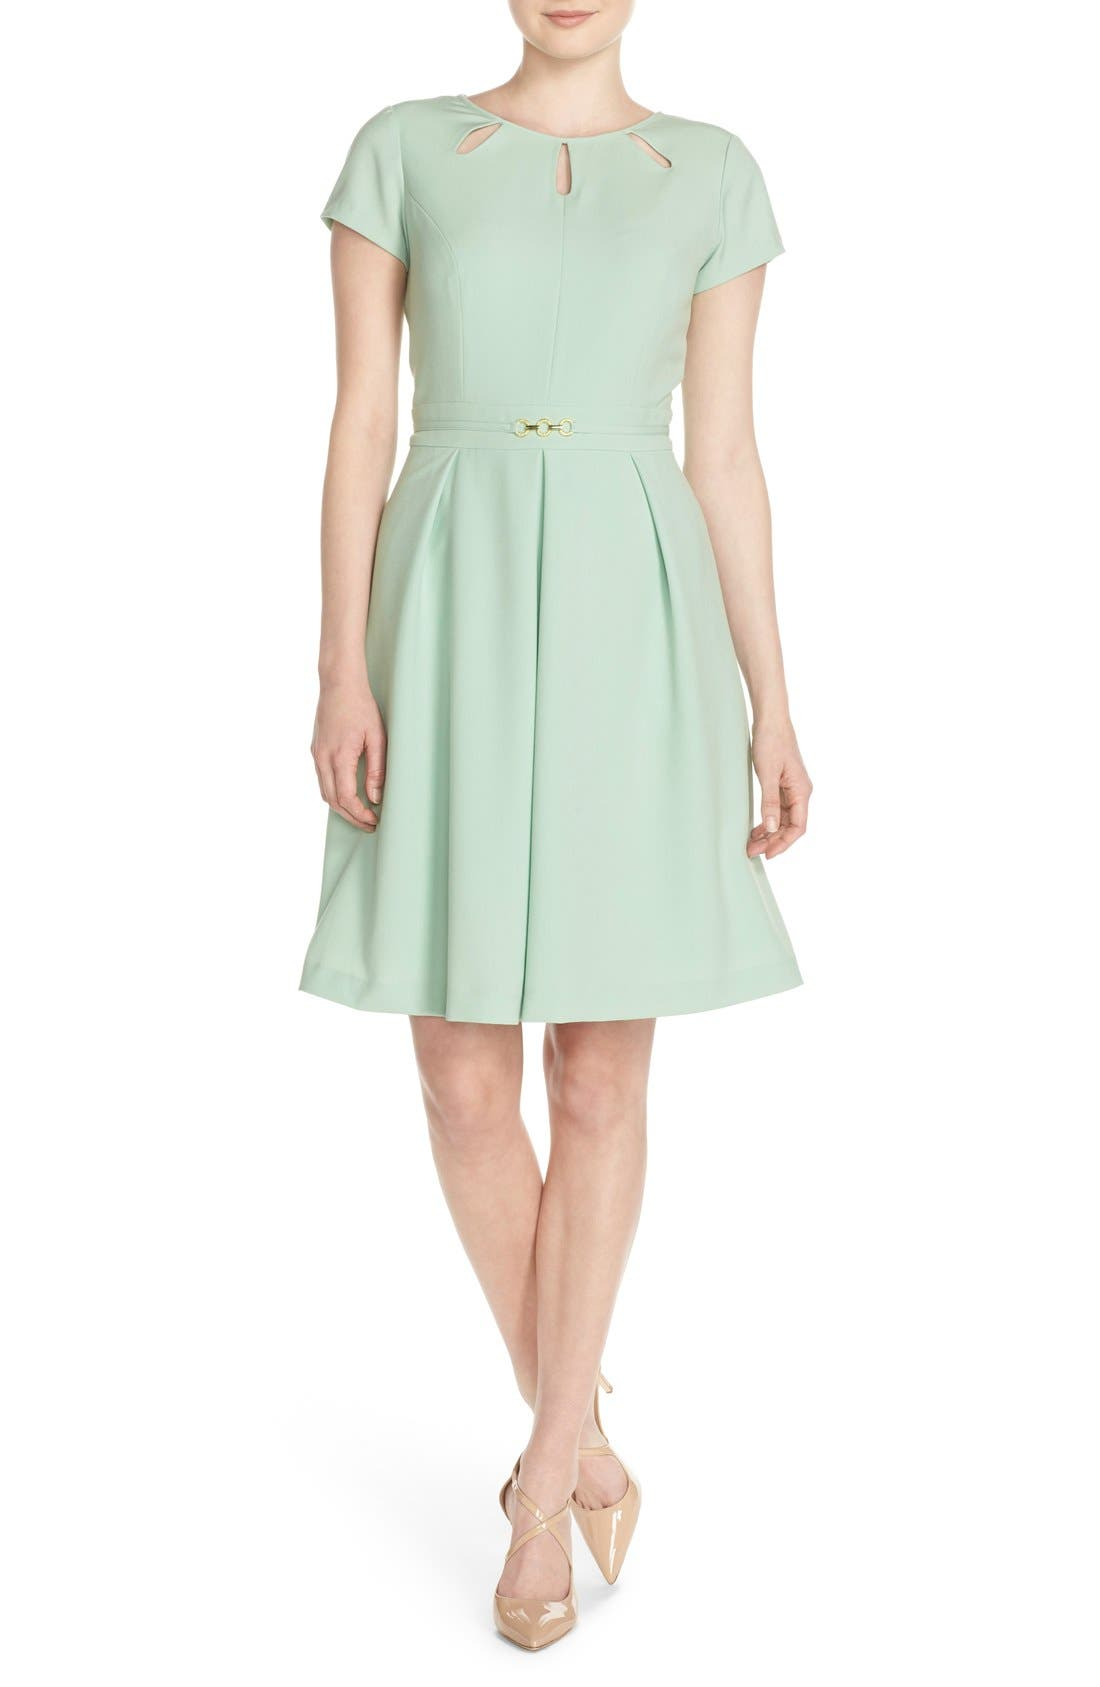 Alternate Image 1 Selected - Ellen Tracy Cutout Neck Fit & Flare Dress (Regular & Petite)